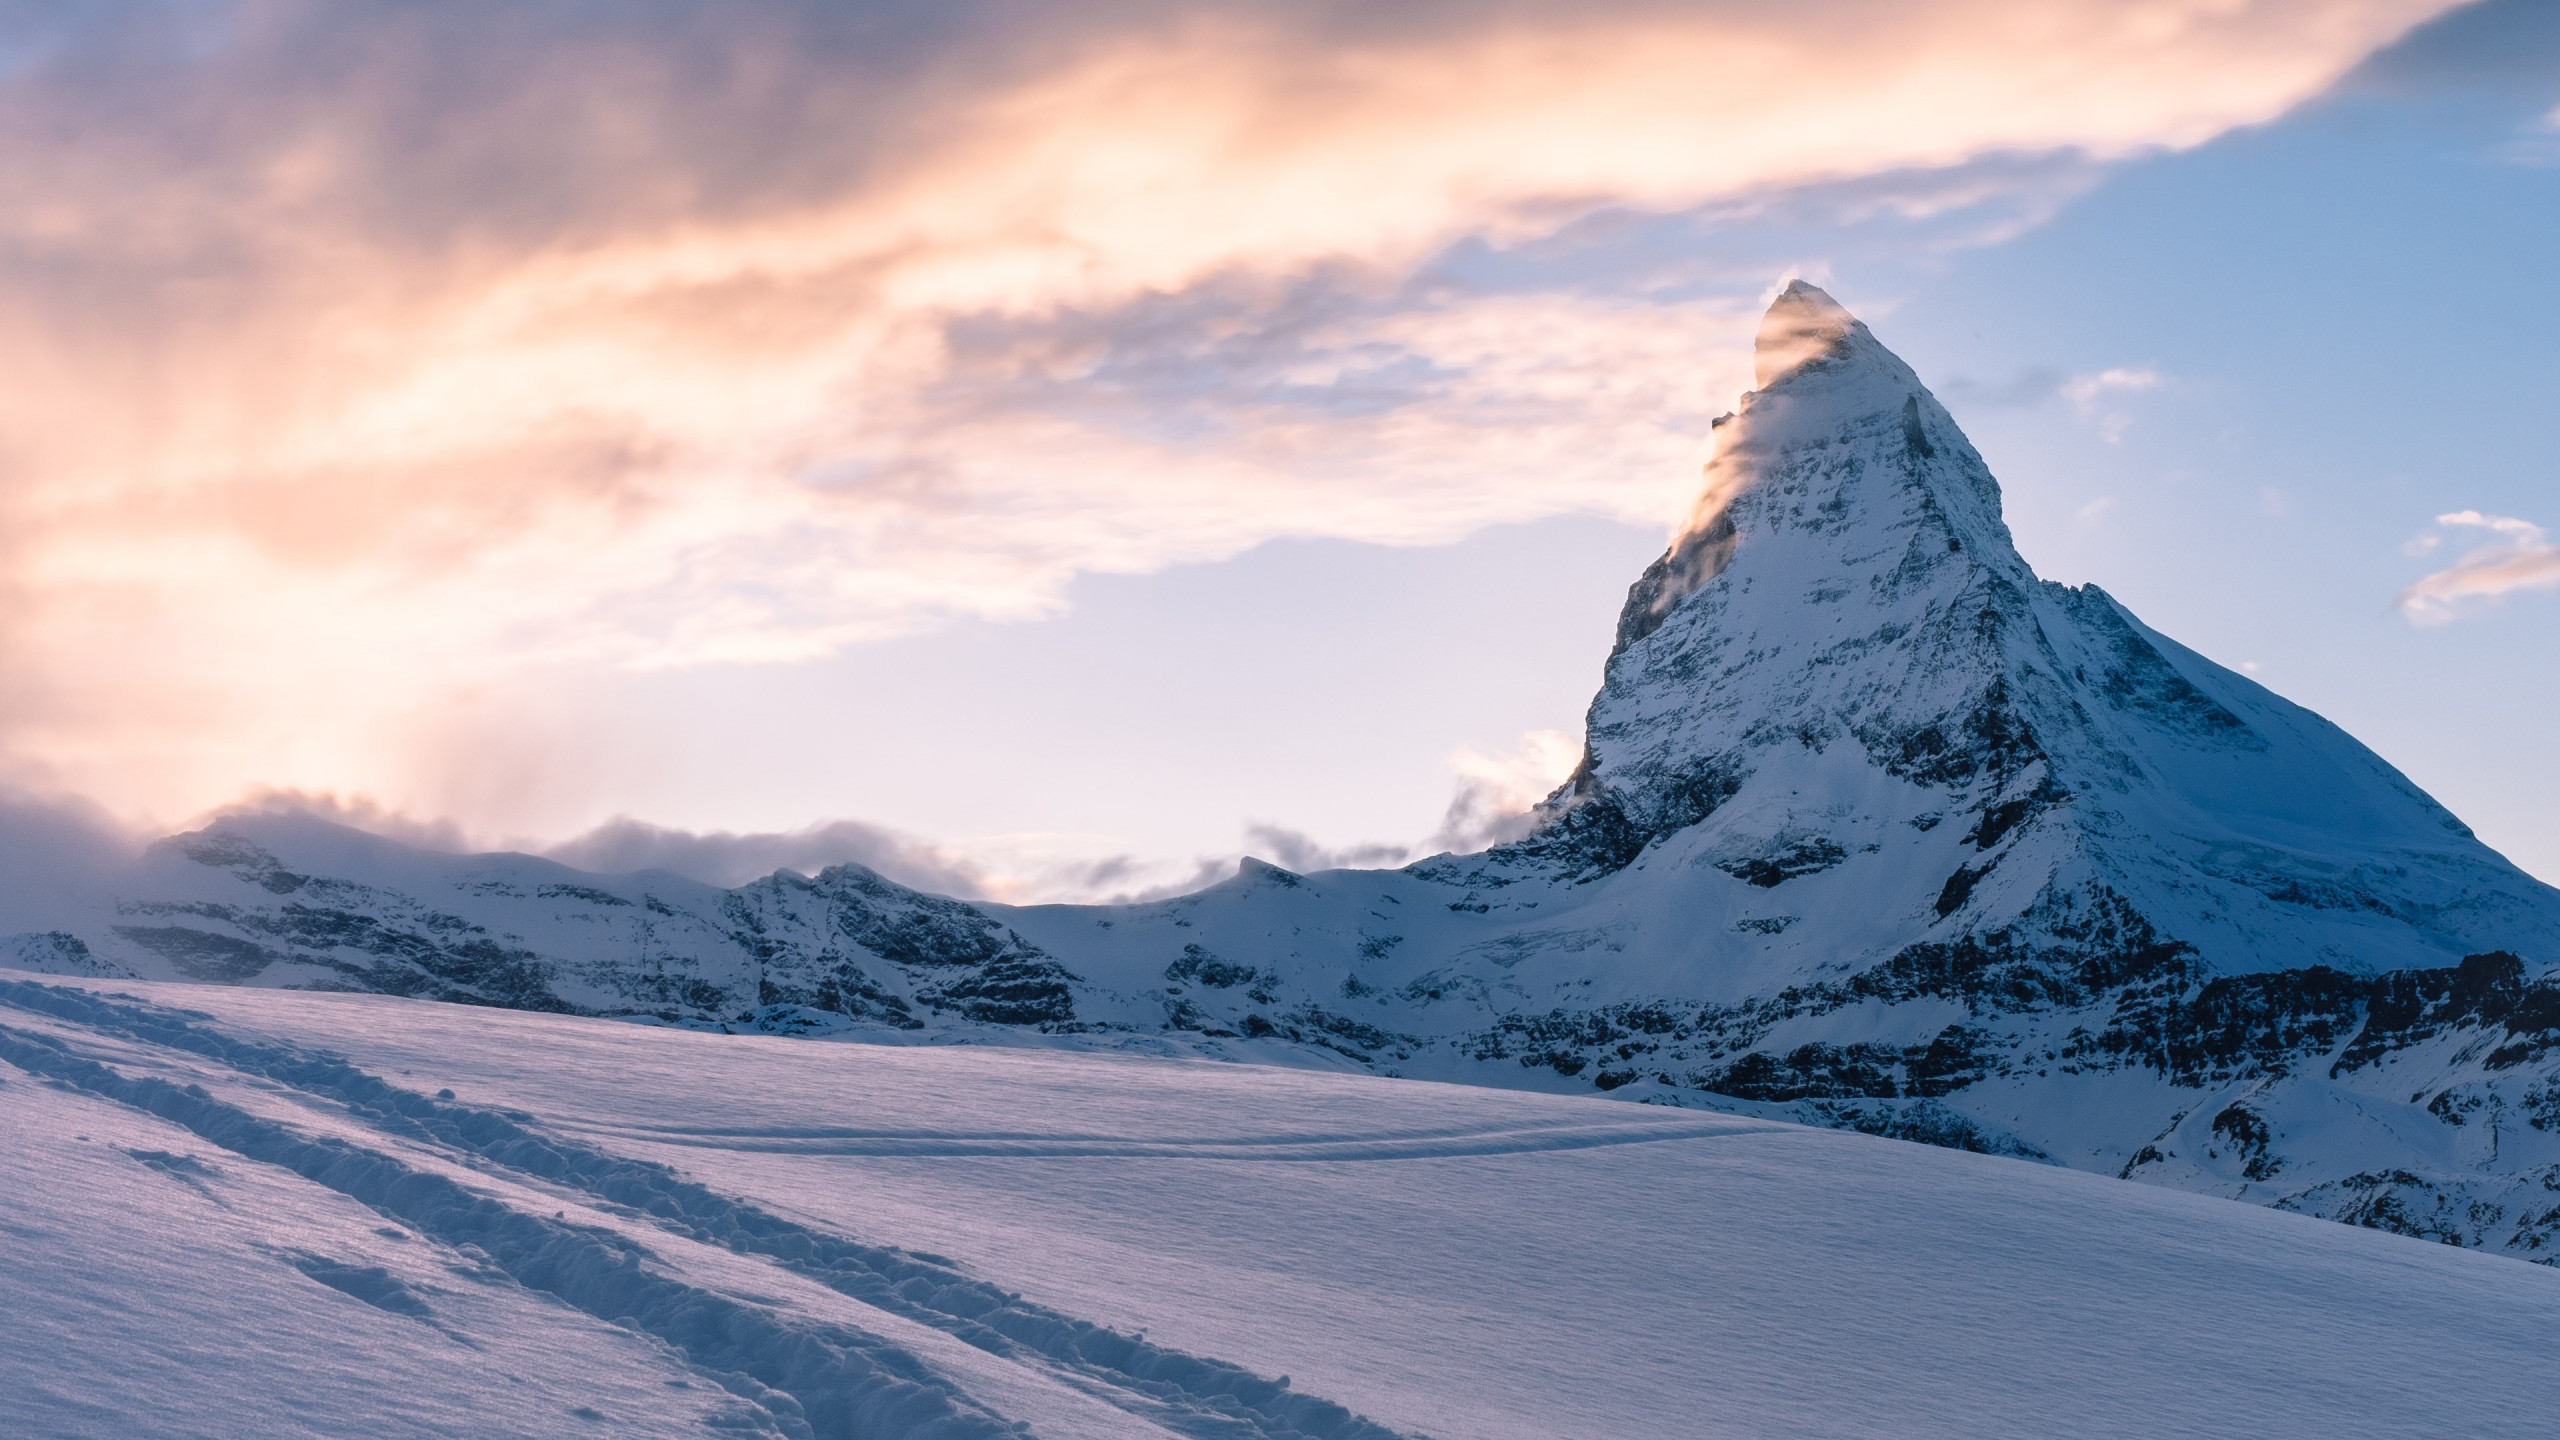 Swiss Alps. Matterhorn mountain peak wallpaper 2560x1440